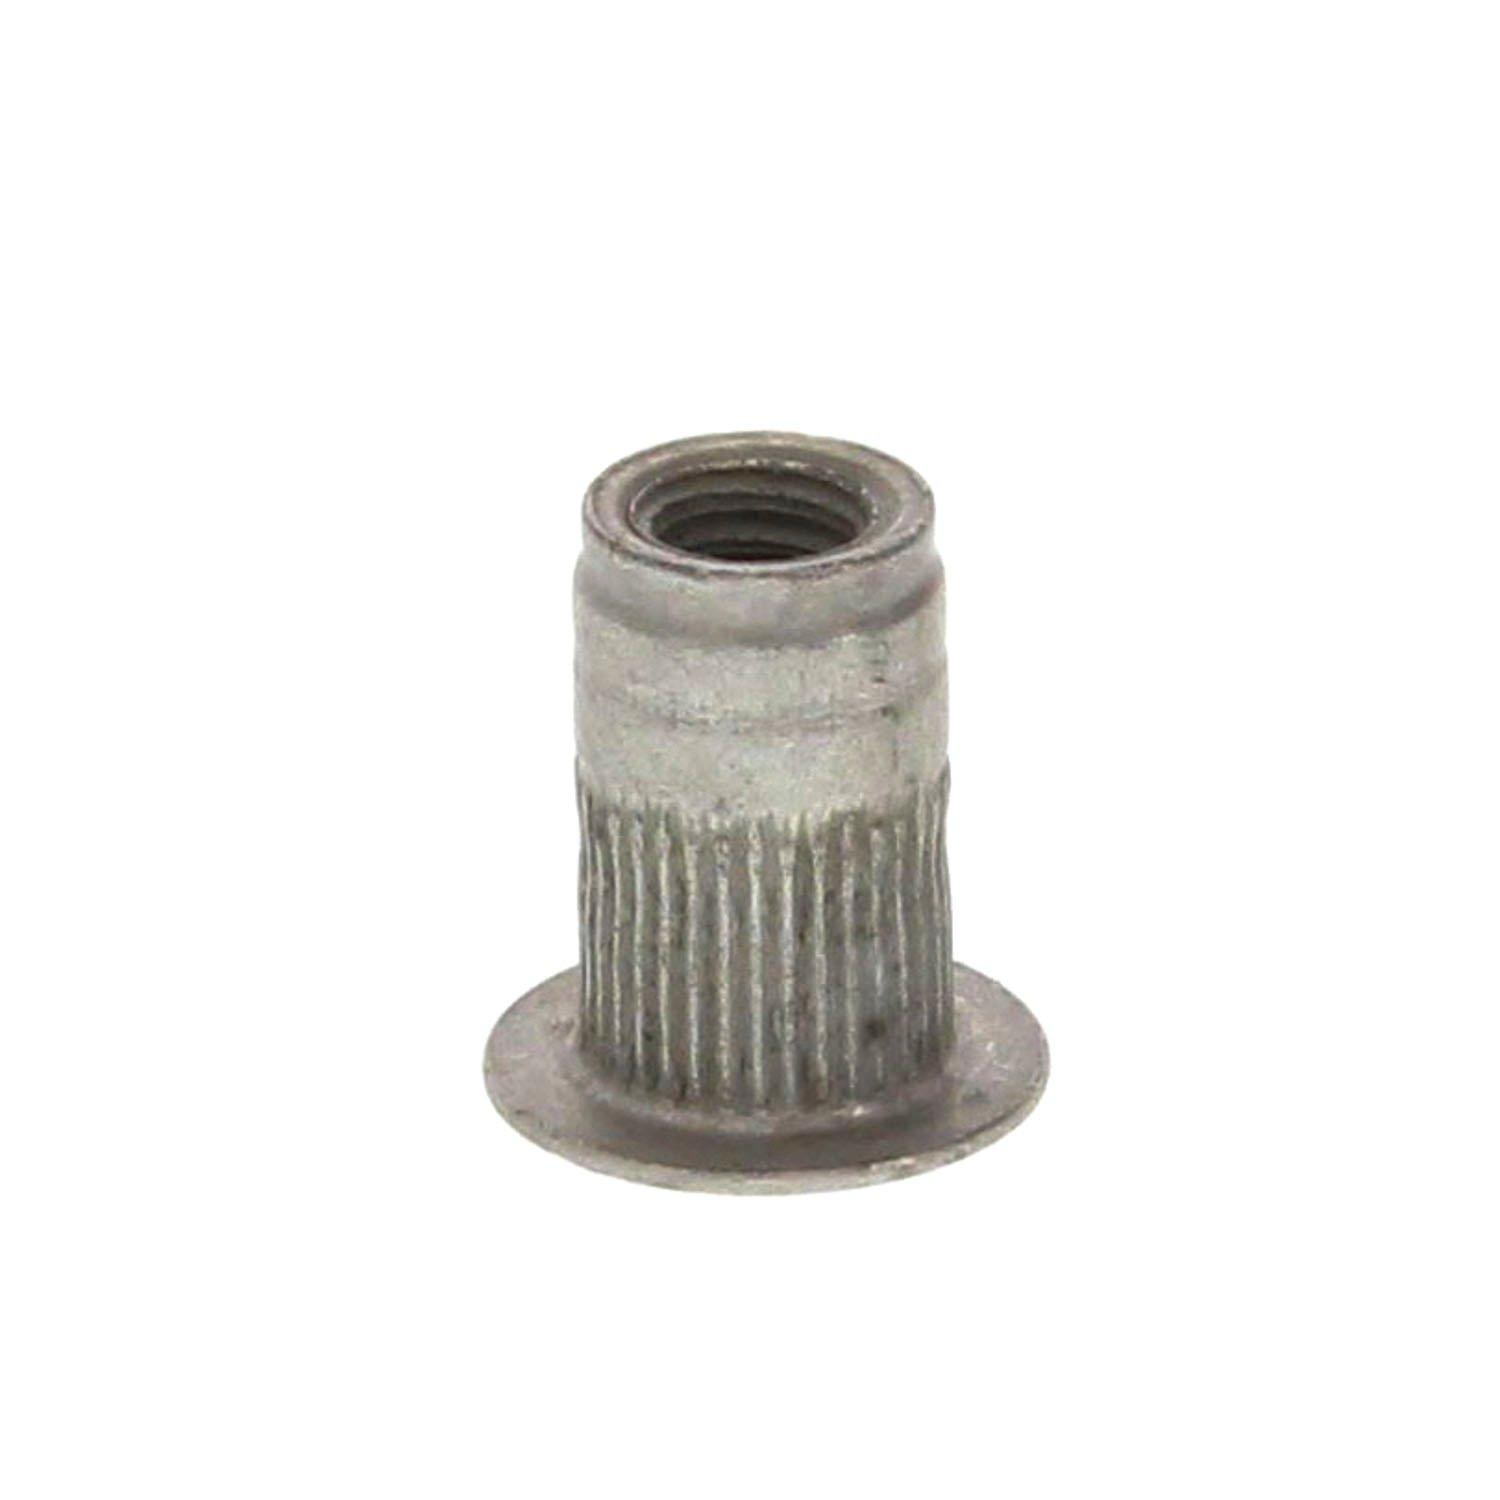 DELFIELD INSERT THREADED 8-32